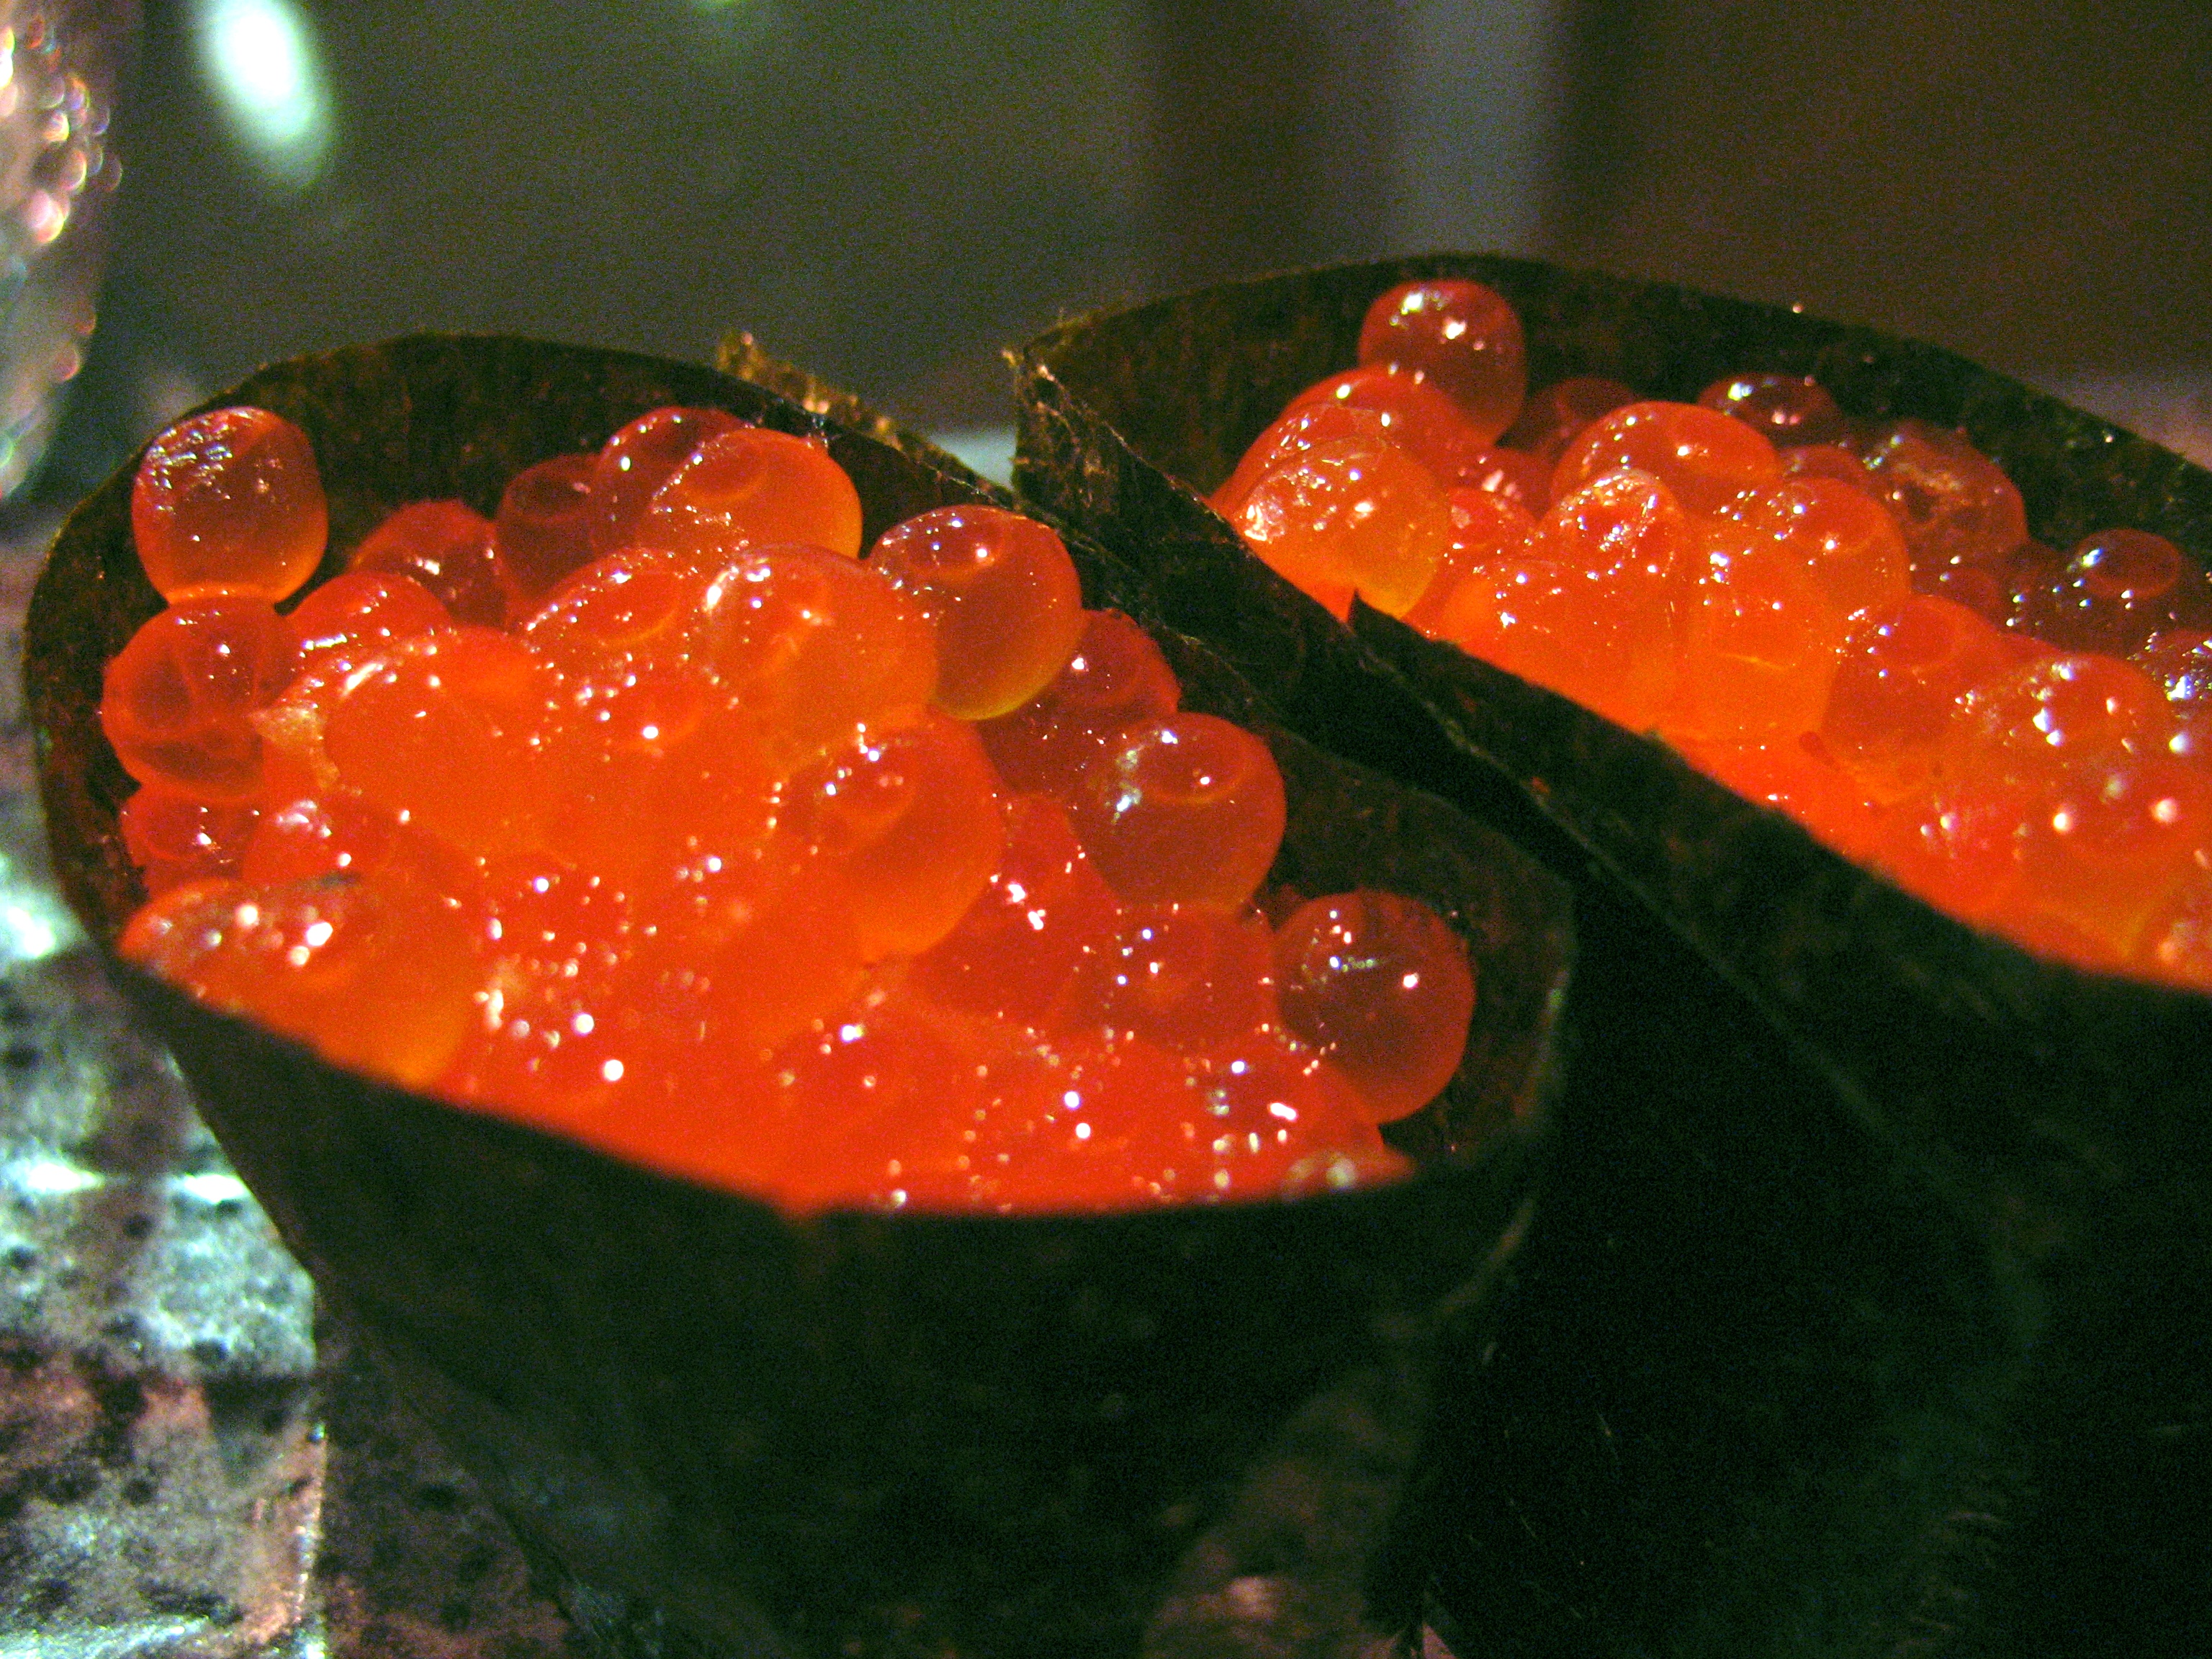 Salmon Roe Asian Gourmet Recipes And Very Easy To Make Is This Delicious  Smoked Salmon With